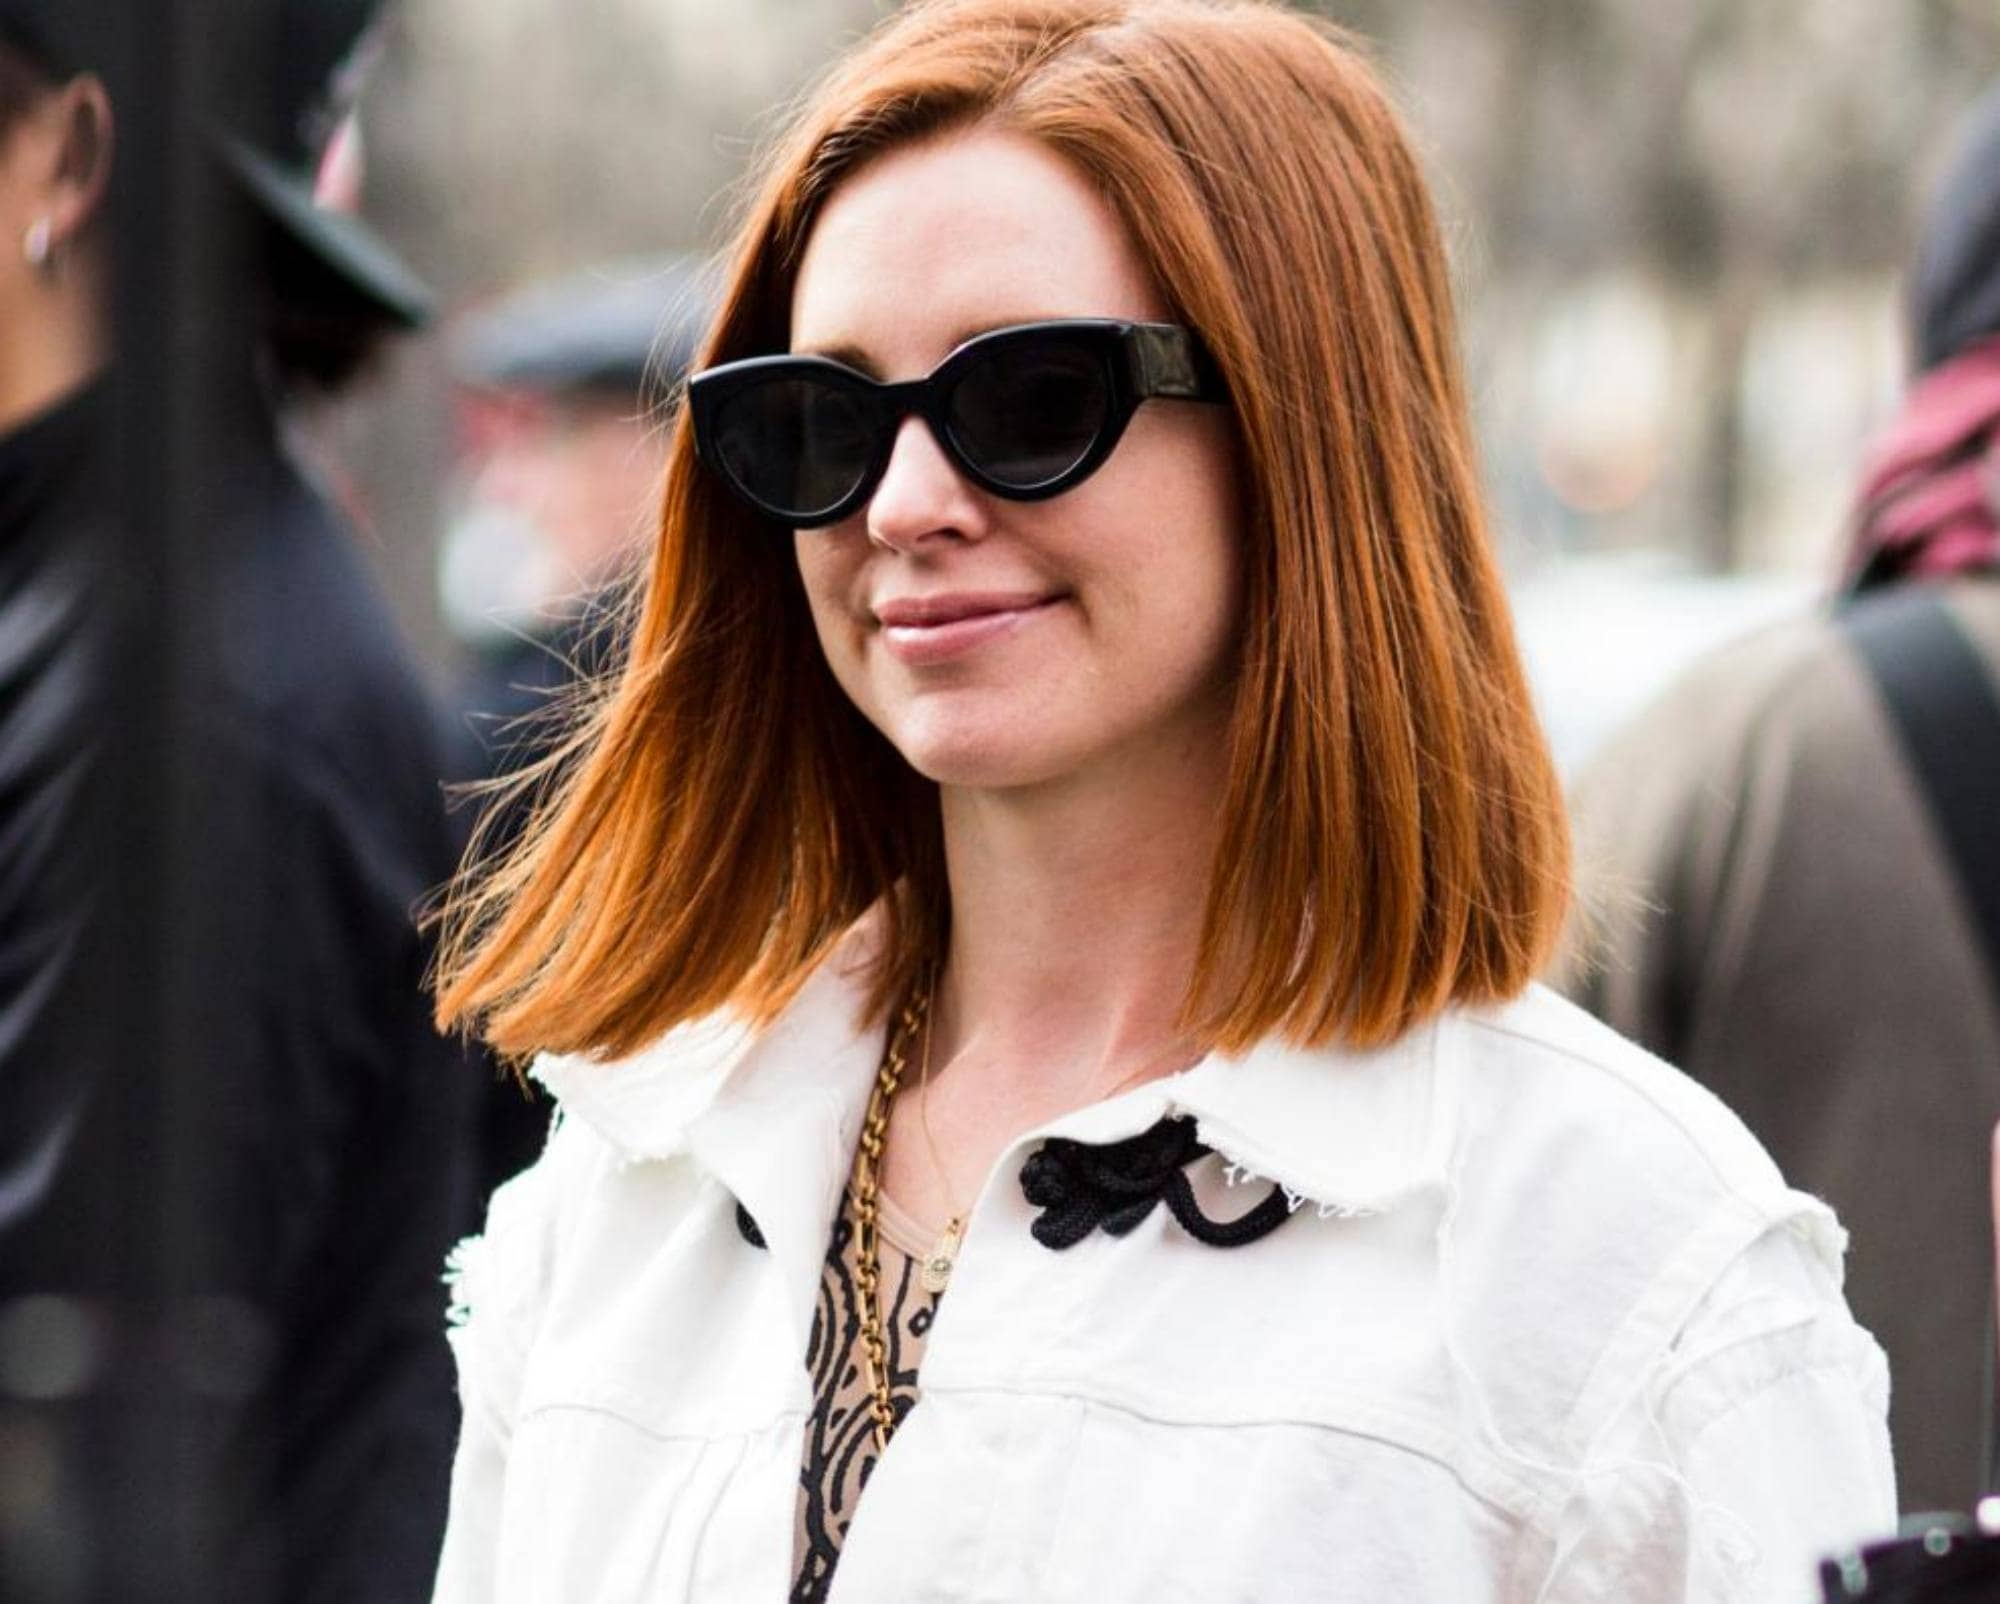 Short red hair: Closeup shot of a woman with copper lob wearing sunglasses and white jacket outdoors